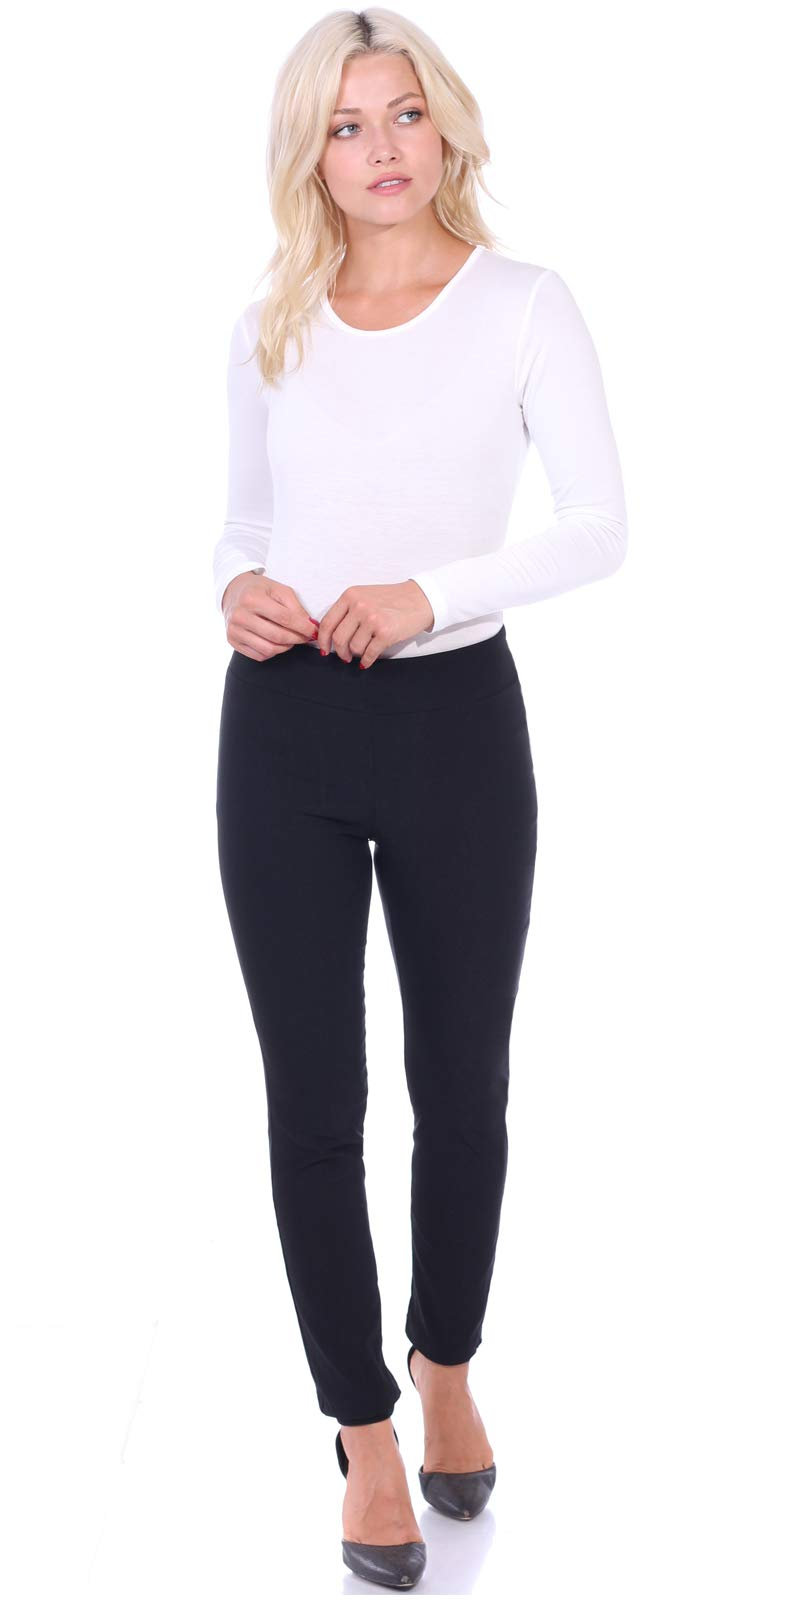 Popana Womens Stretch Pull On Dress Pants Ankle Length Work Casual - Made in USA Small Black